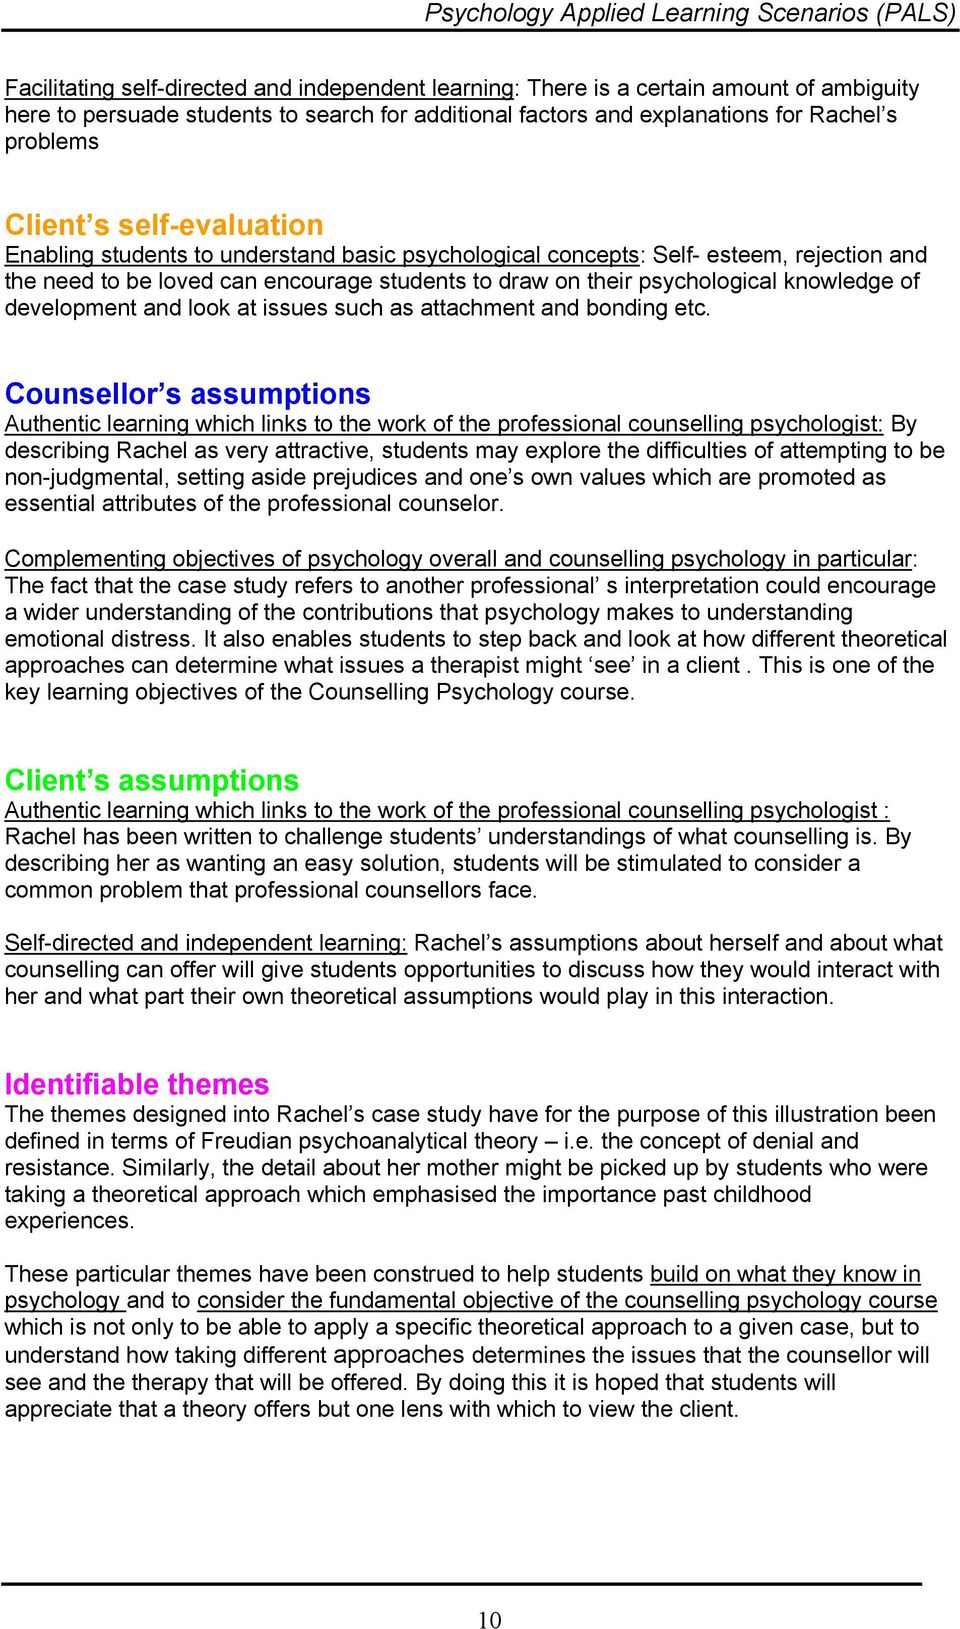 problems with case studies in psychology